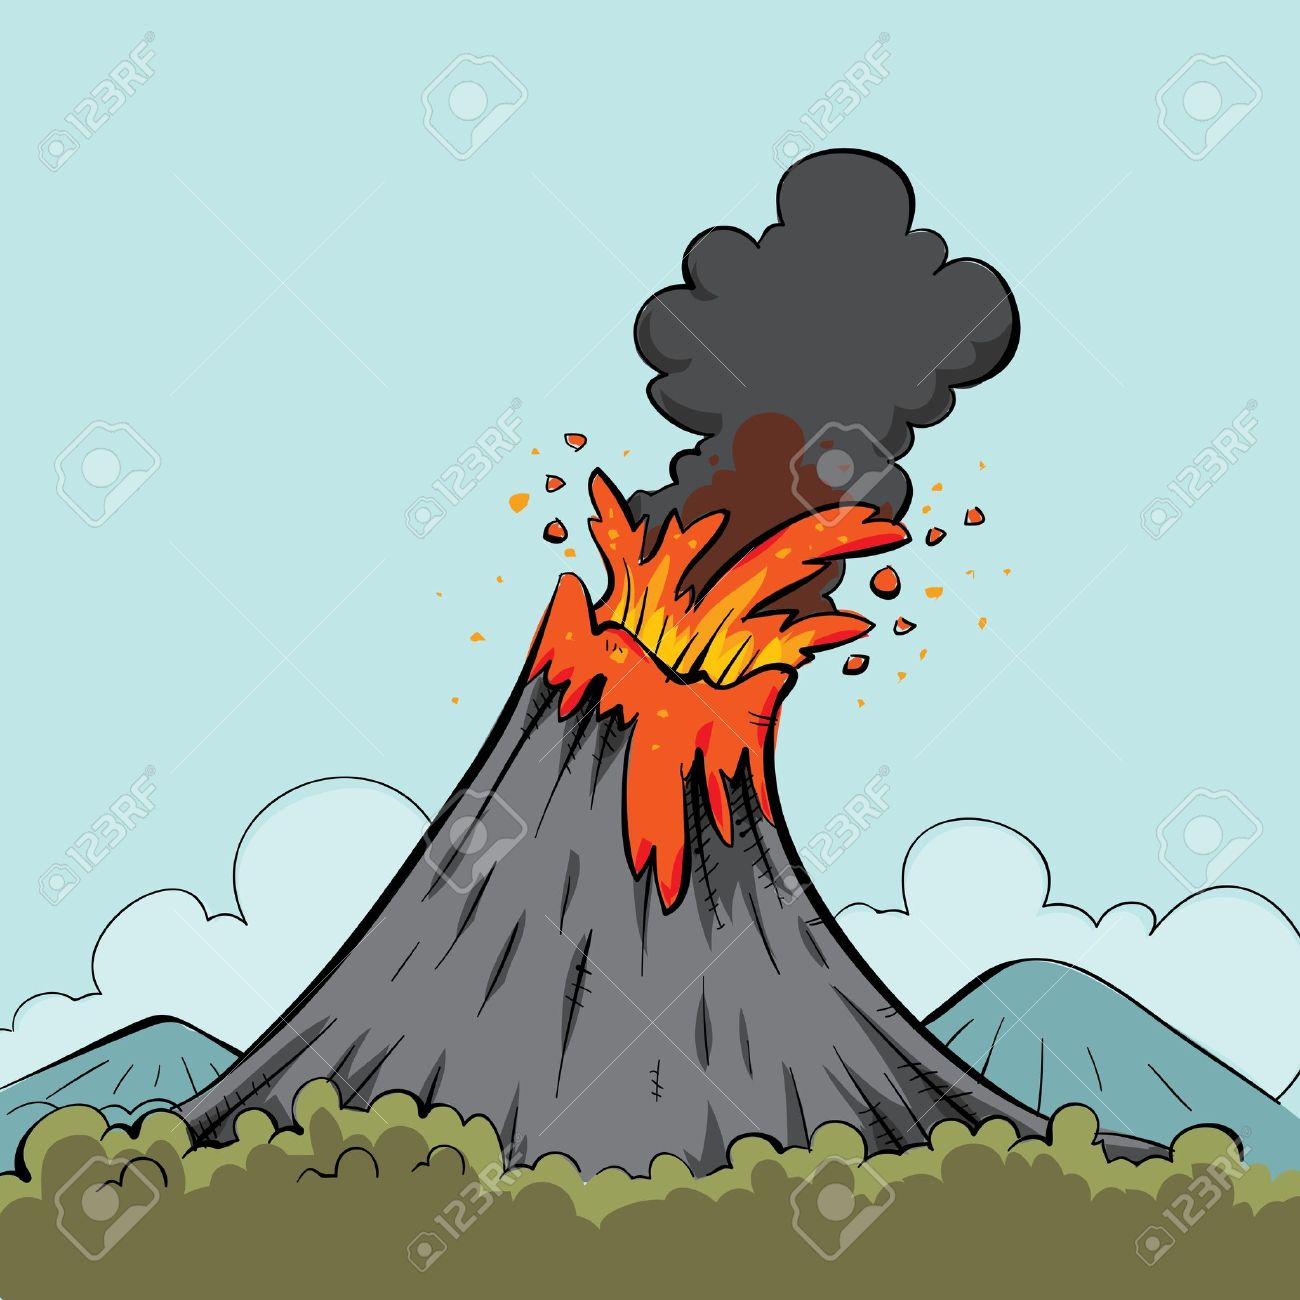 Lava Spews From The Mouth Of A Cartoon Volcano. Stock Photo.